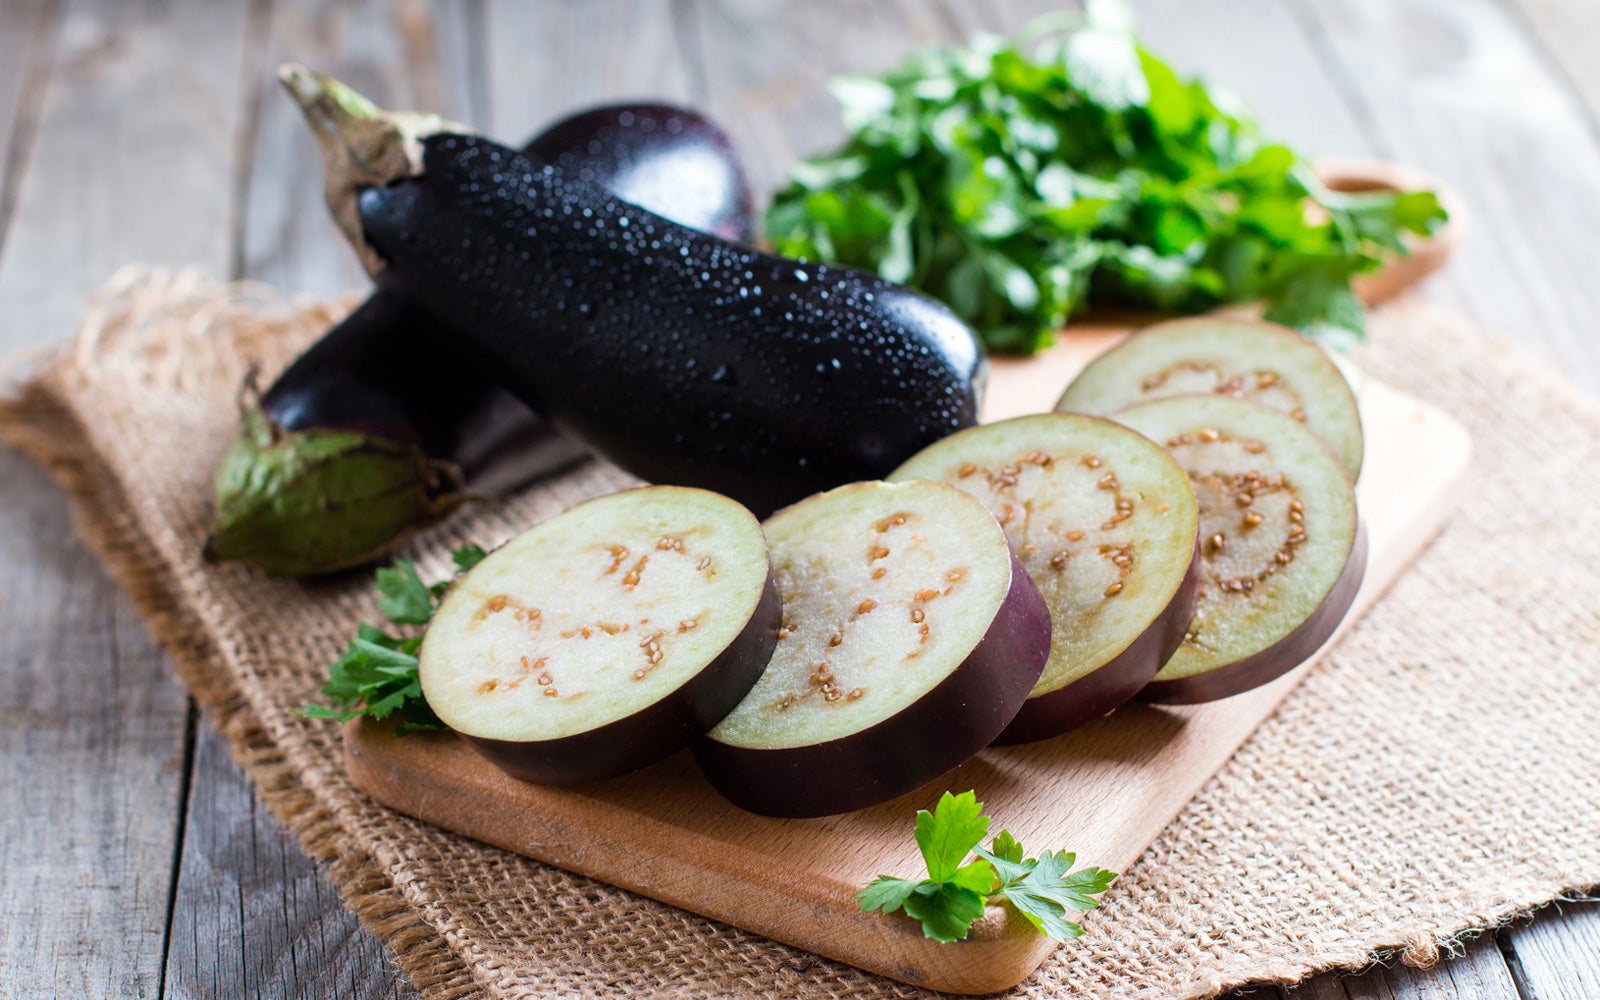 Whole and Sliced Eggplant